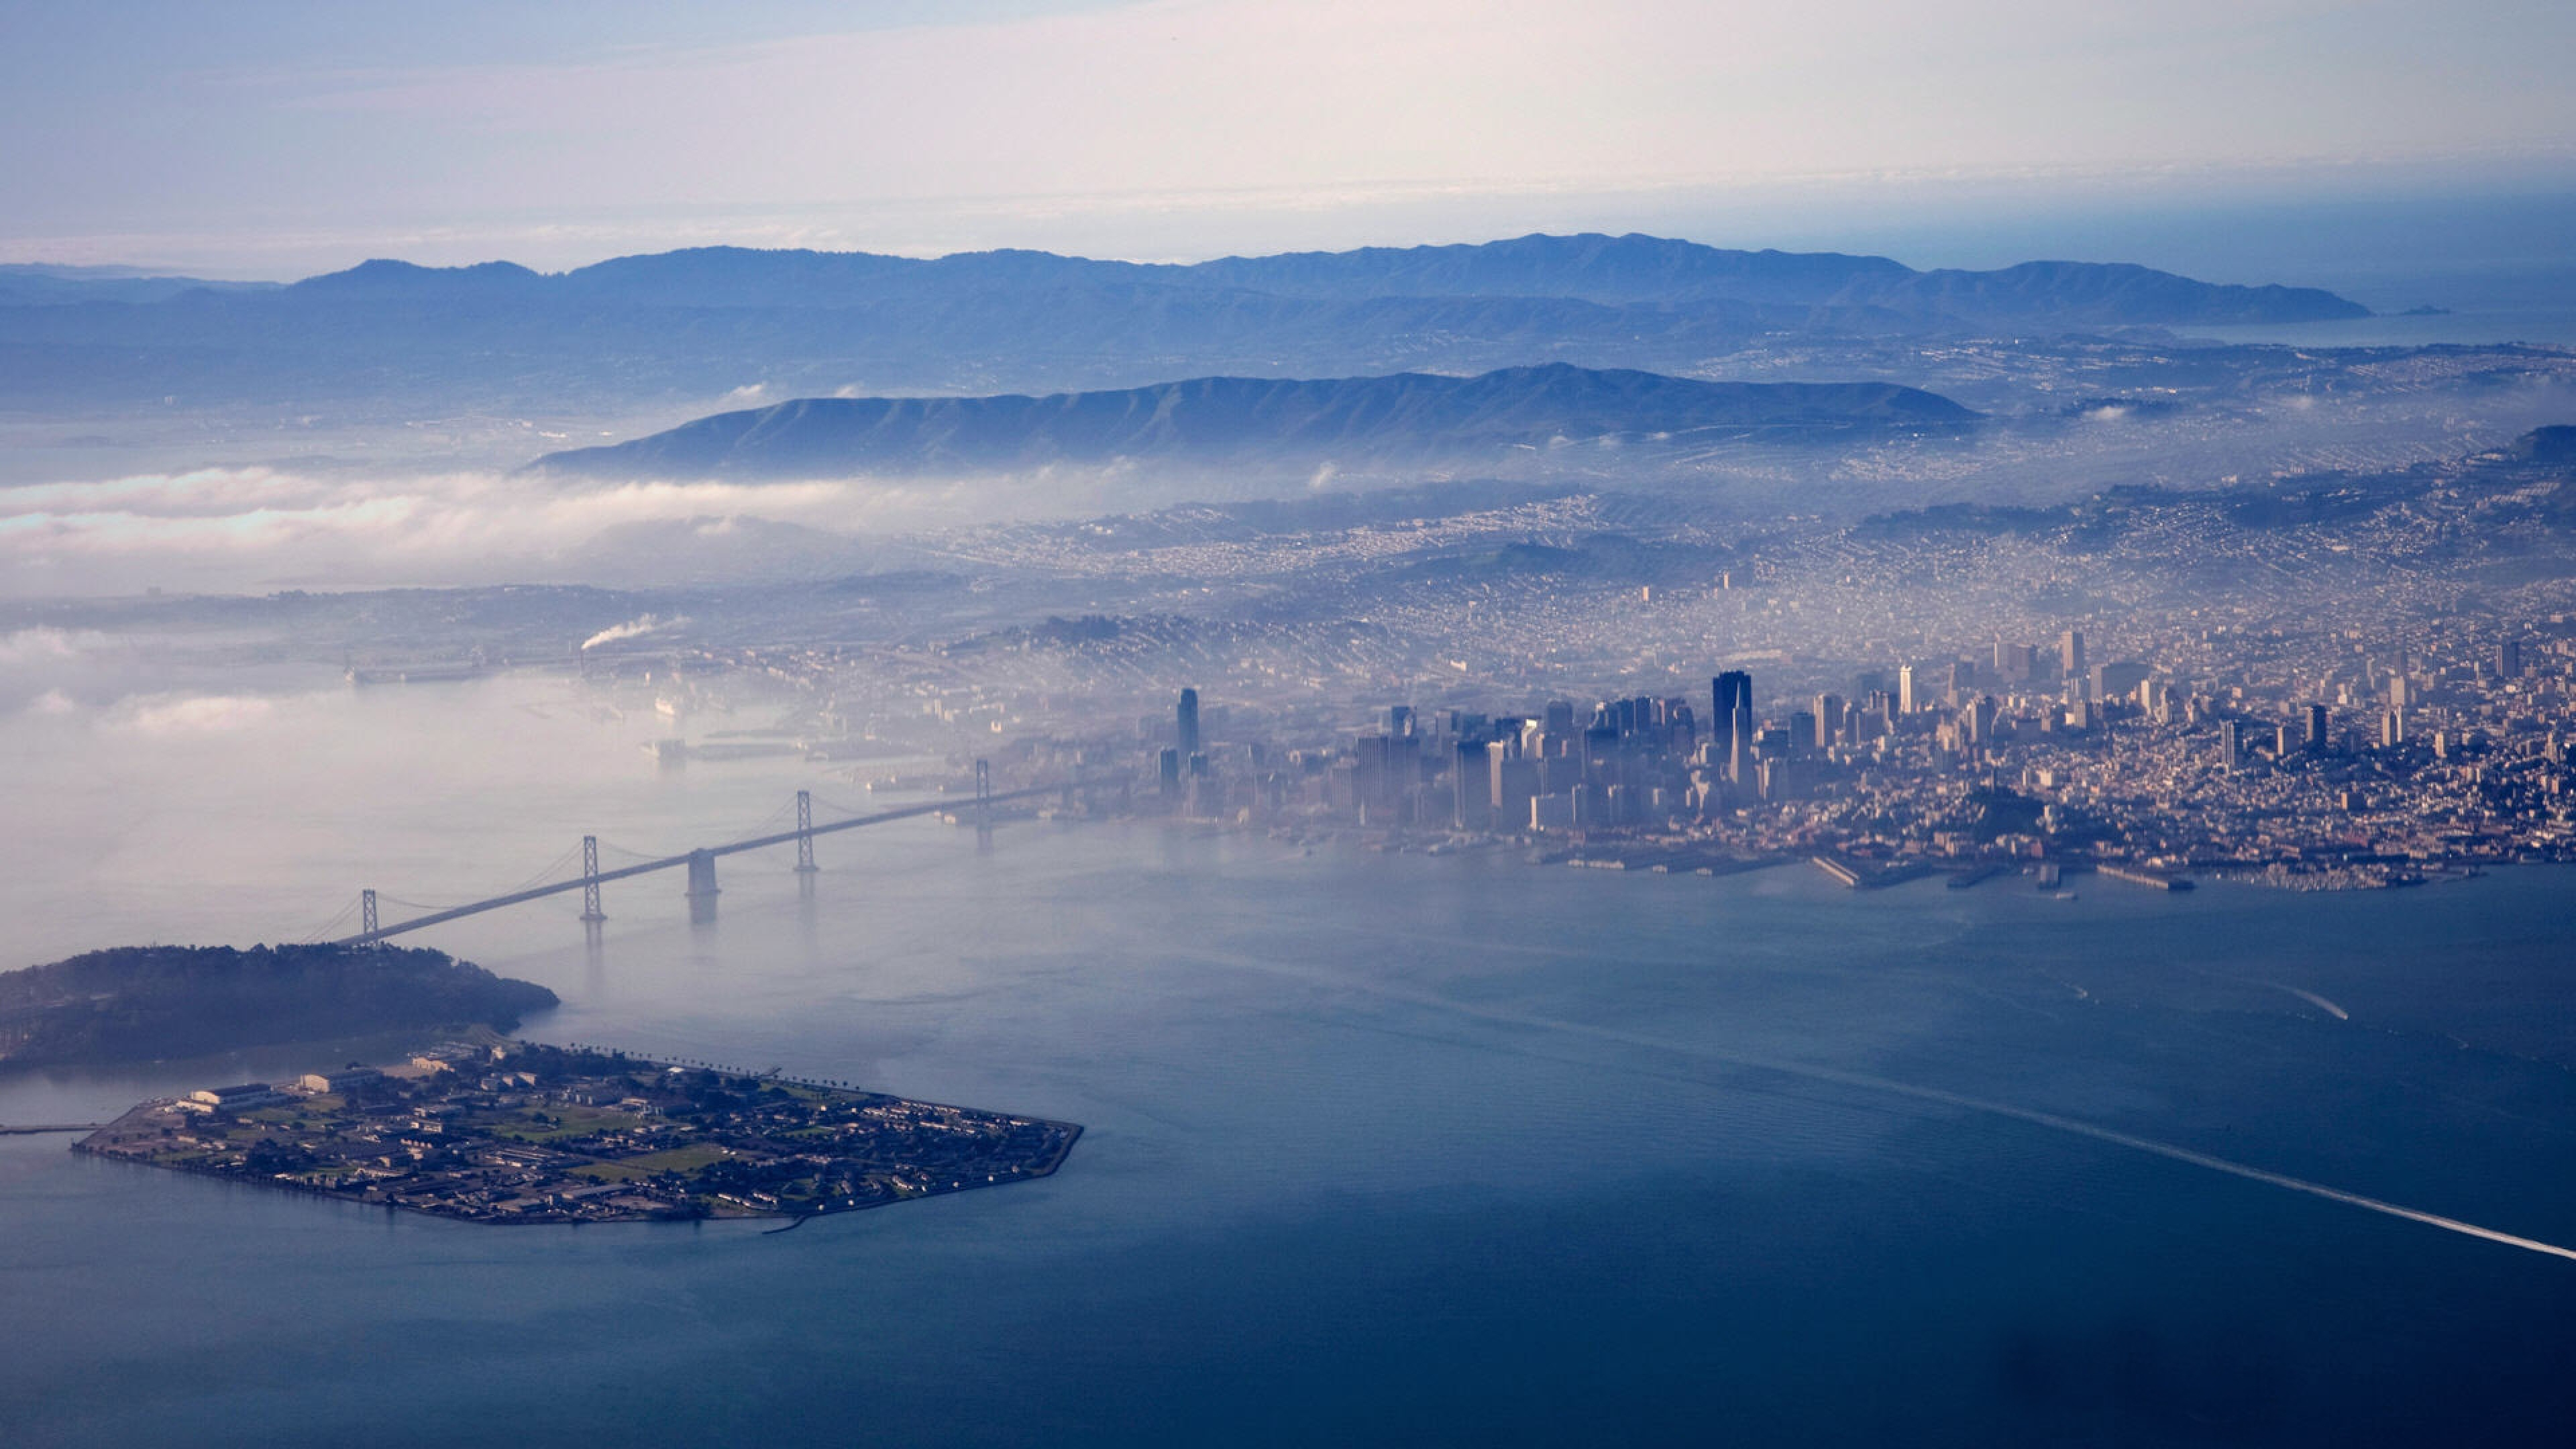 Aerial view San francisco Sky Fog Wallpaper Background 4K Ultra HD 3840x2160